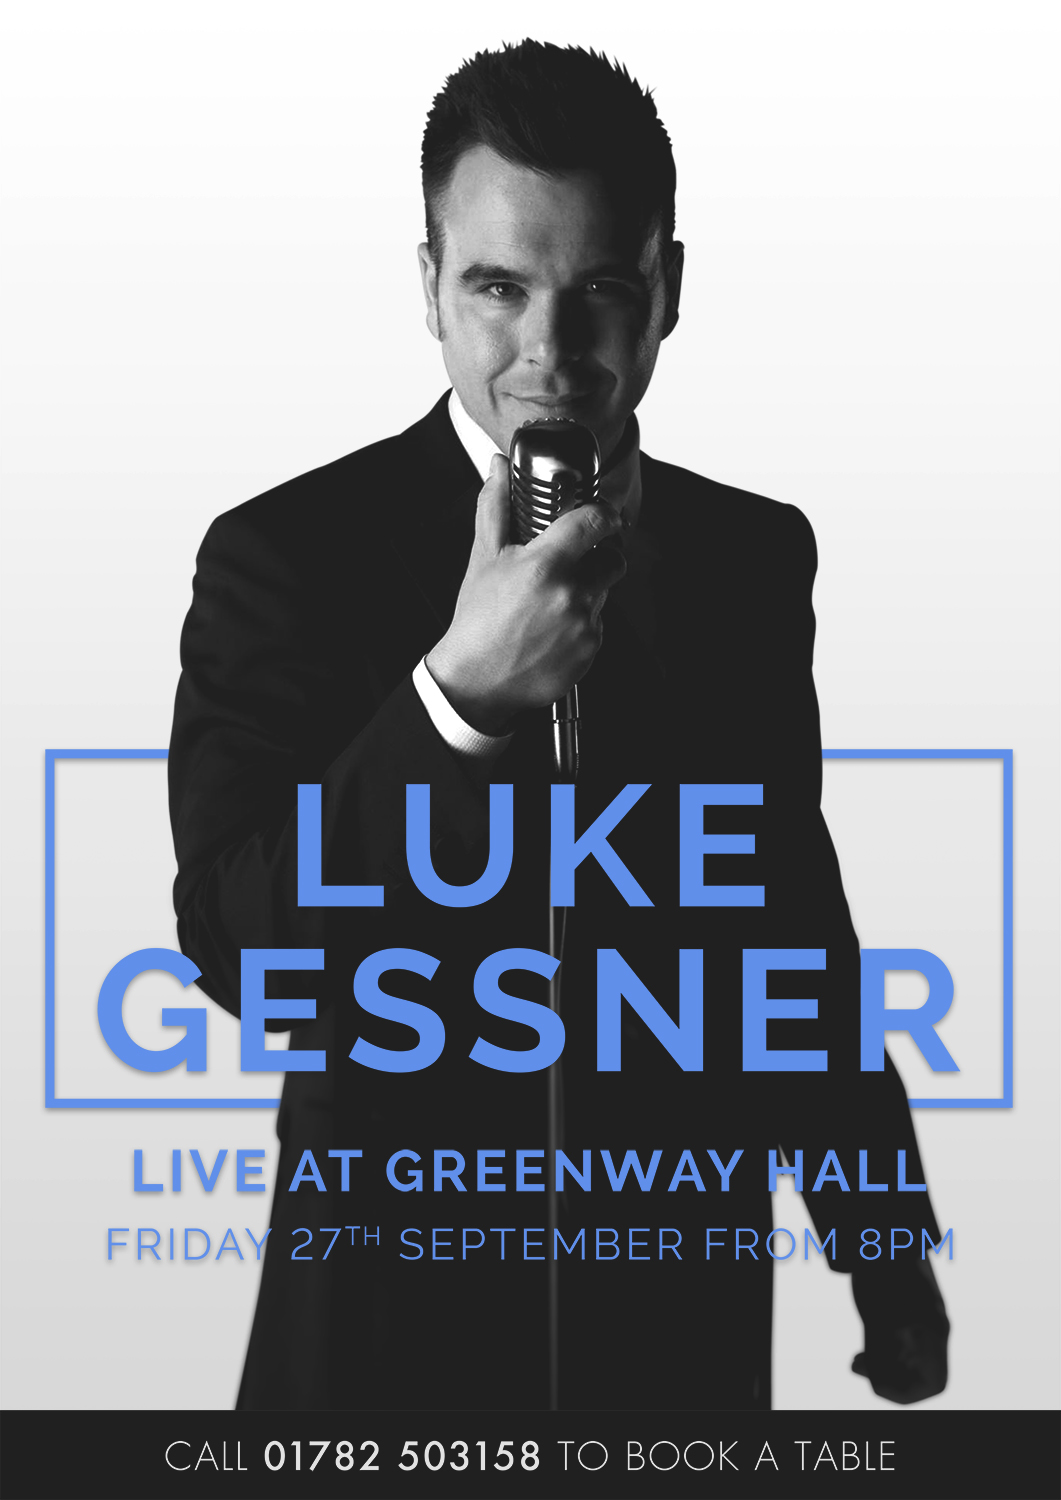 Luke Gessner is live at Greenway Hall on Friday 27th September to book a table call 01782-503138